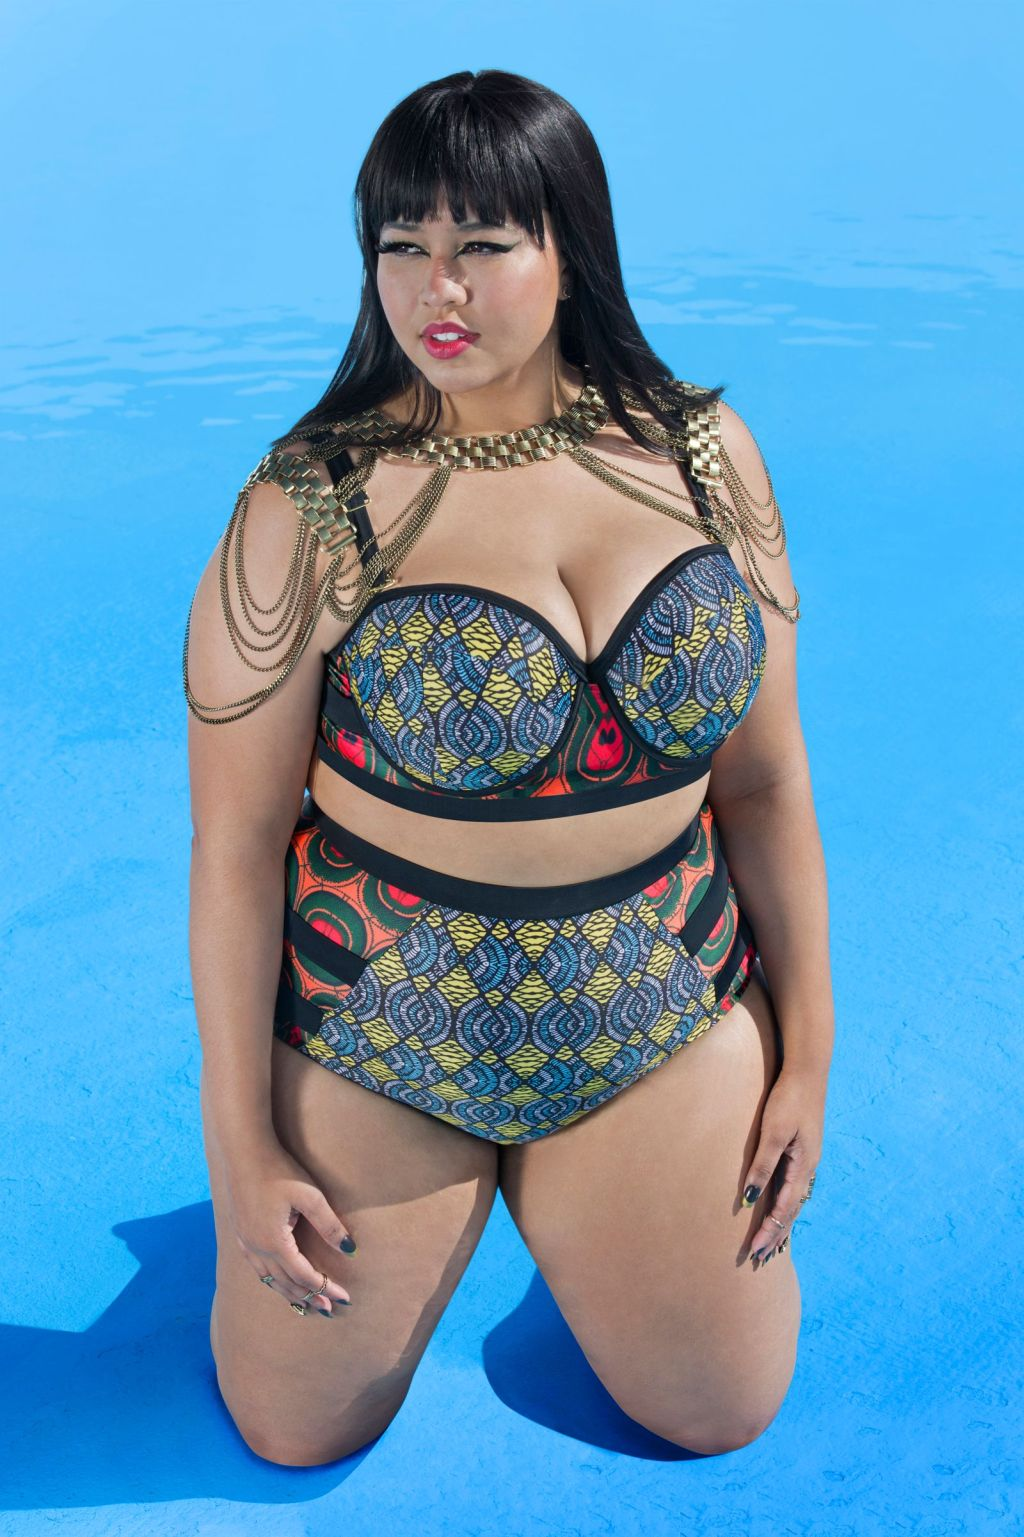 Gabi Fresh Swimsuit Collection fro 2016 - BellaNaija - Janaury 2016003